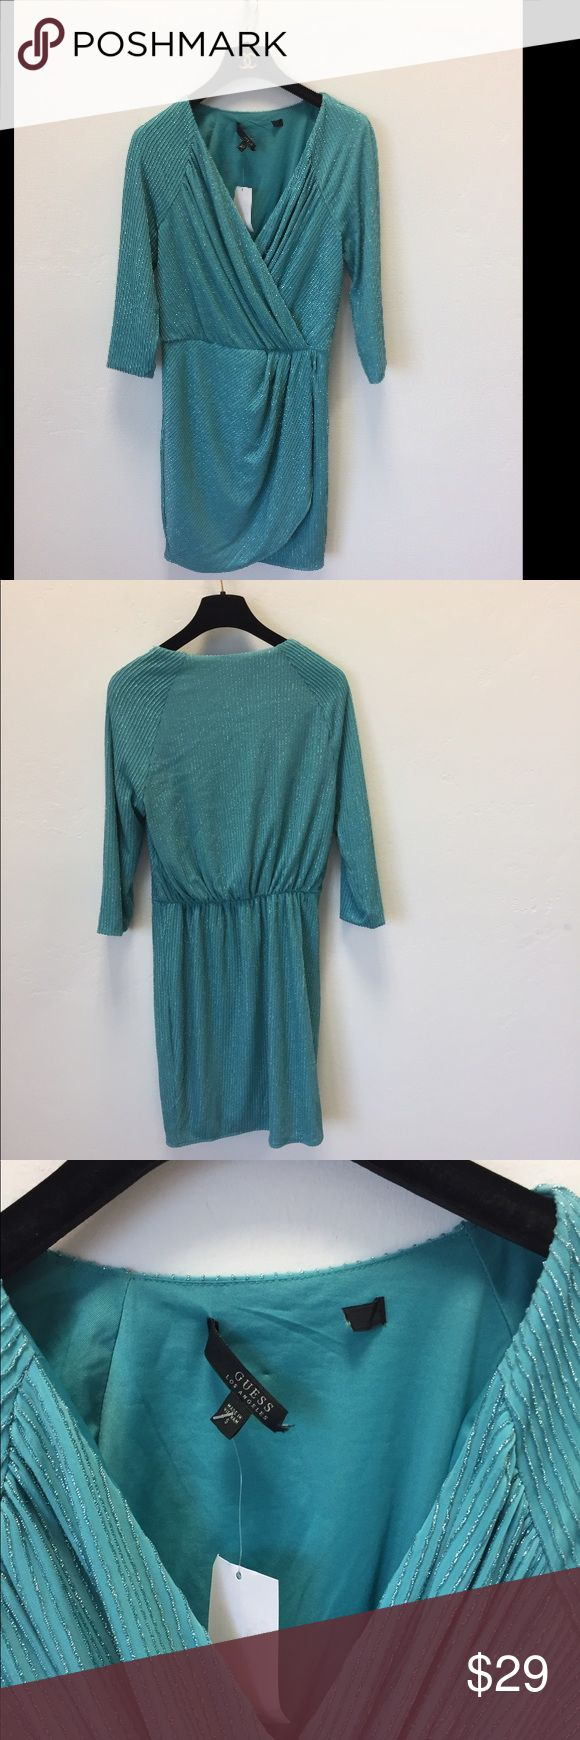 Guess mint green silver mini dress size small new Guess mint green silver mini dress size small new without tags ...so cute on Guess Dresses Mini